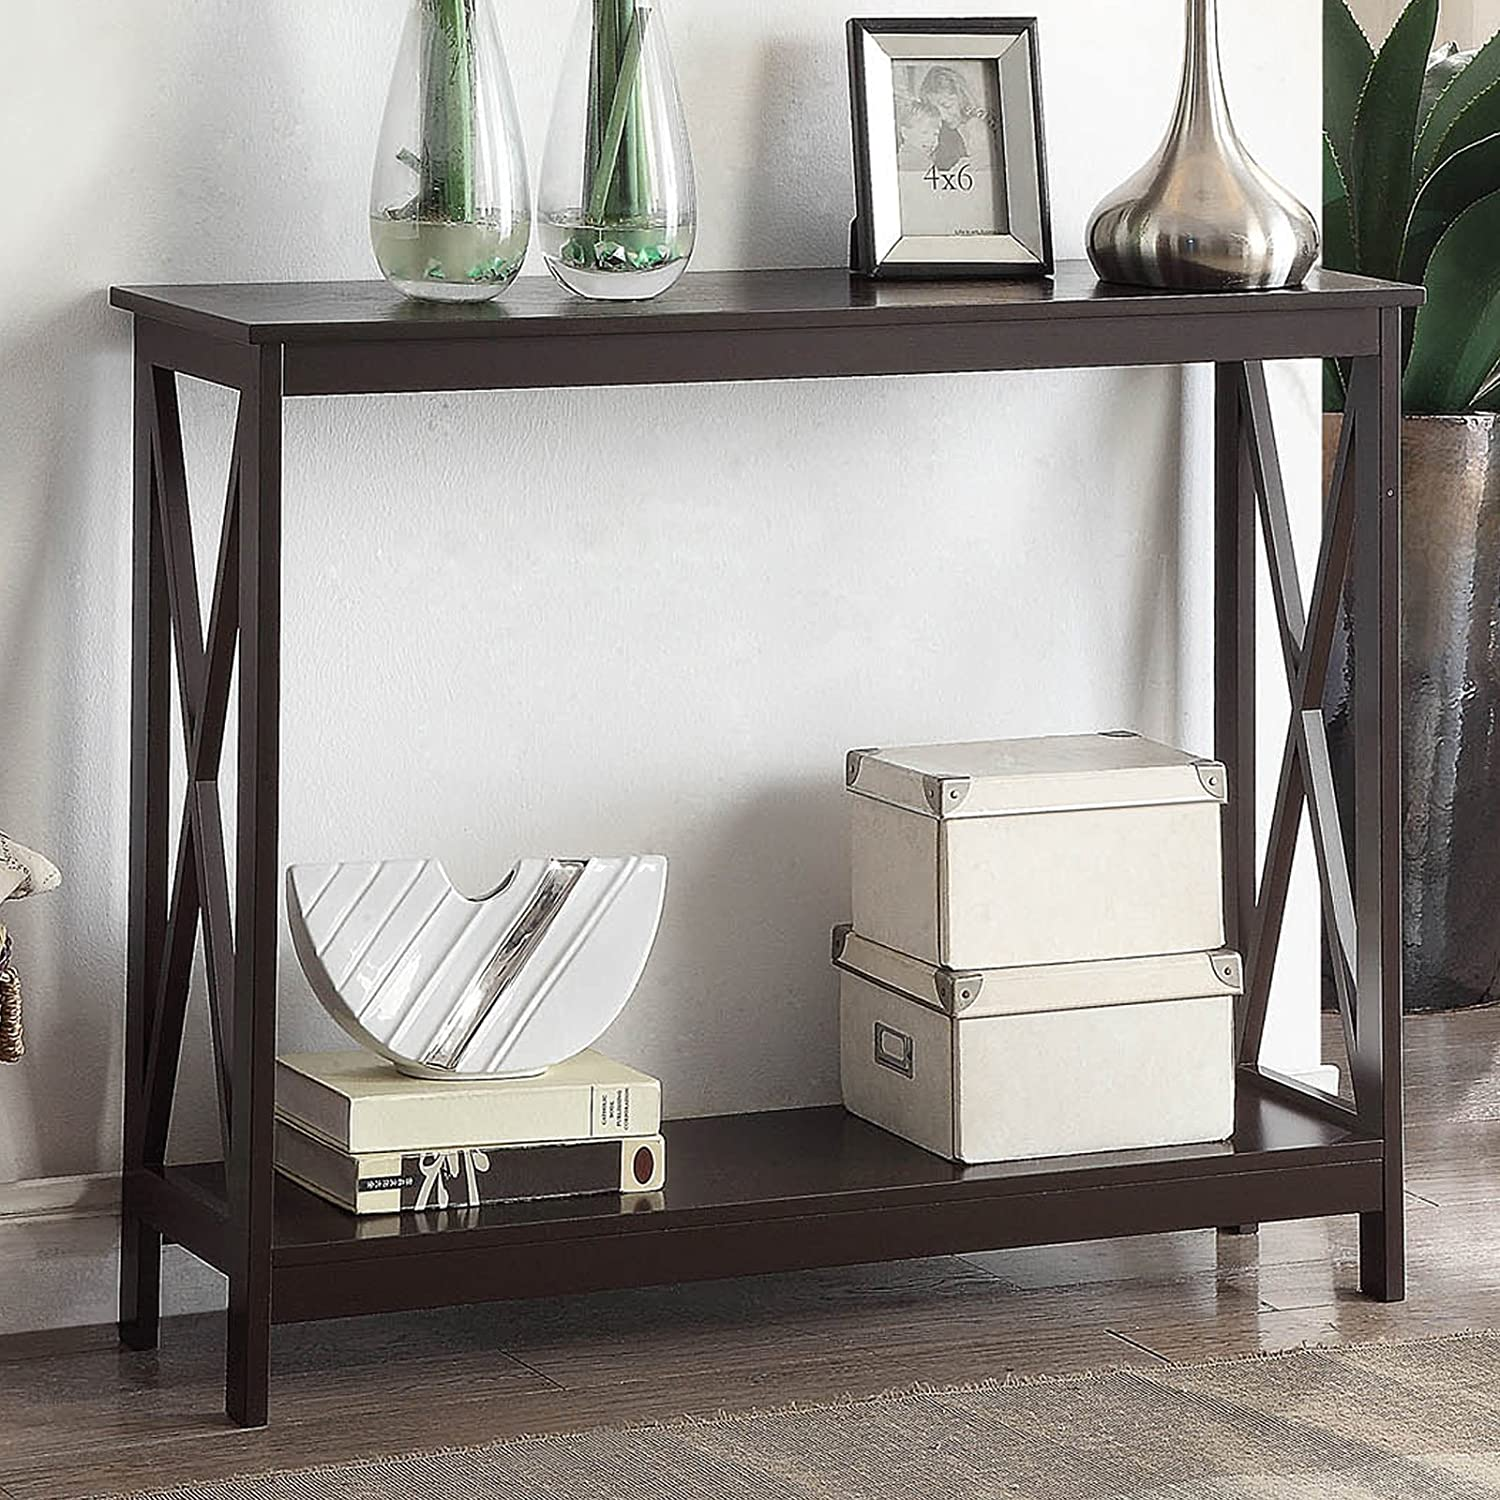 Amazon.com: Console Table, Perfect for Entryway, Living Area ...